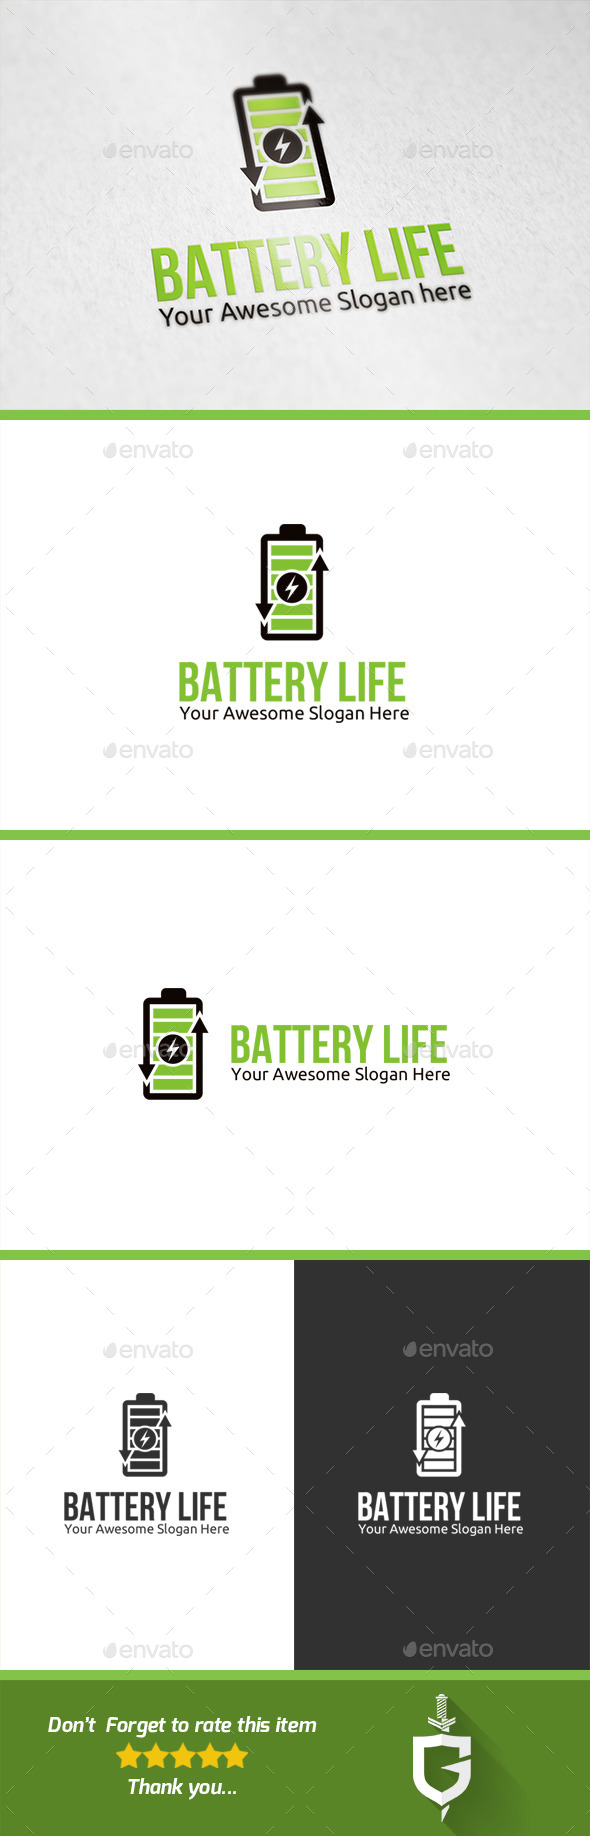 GraphicRiver Battery Life Logo Template 10111225